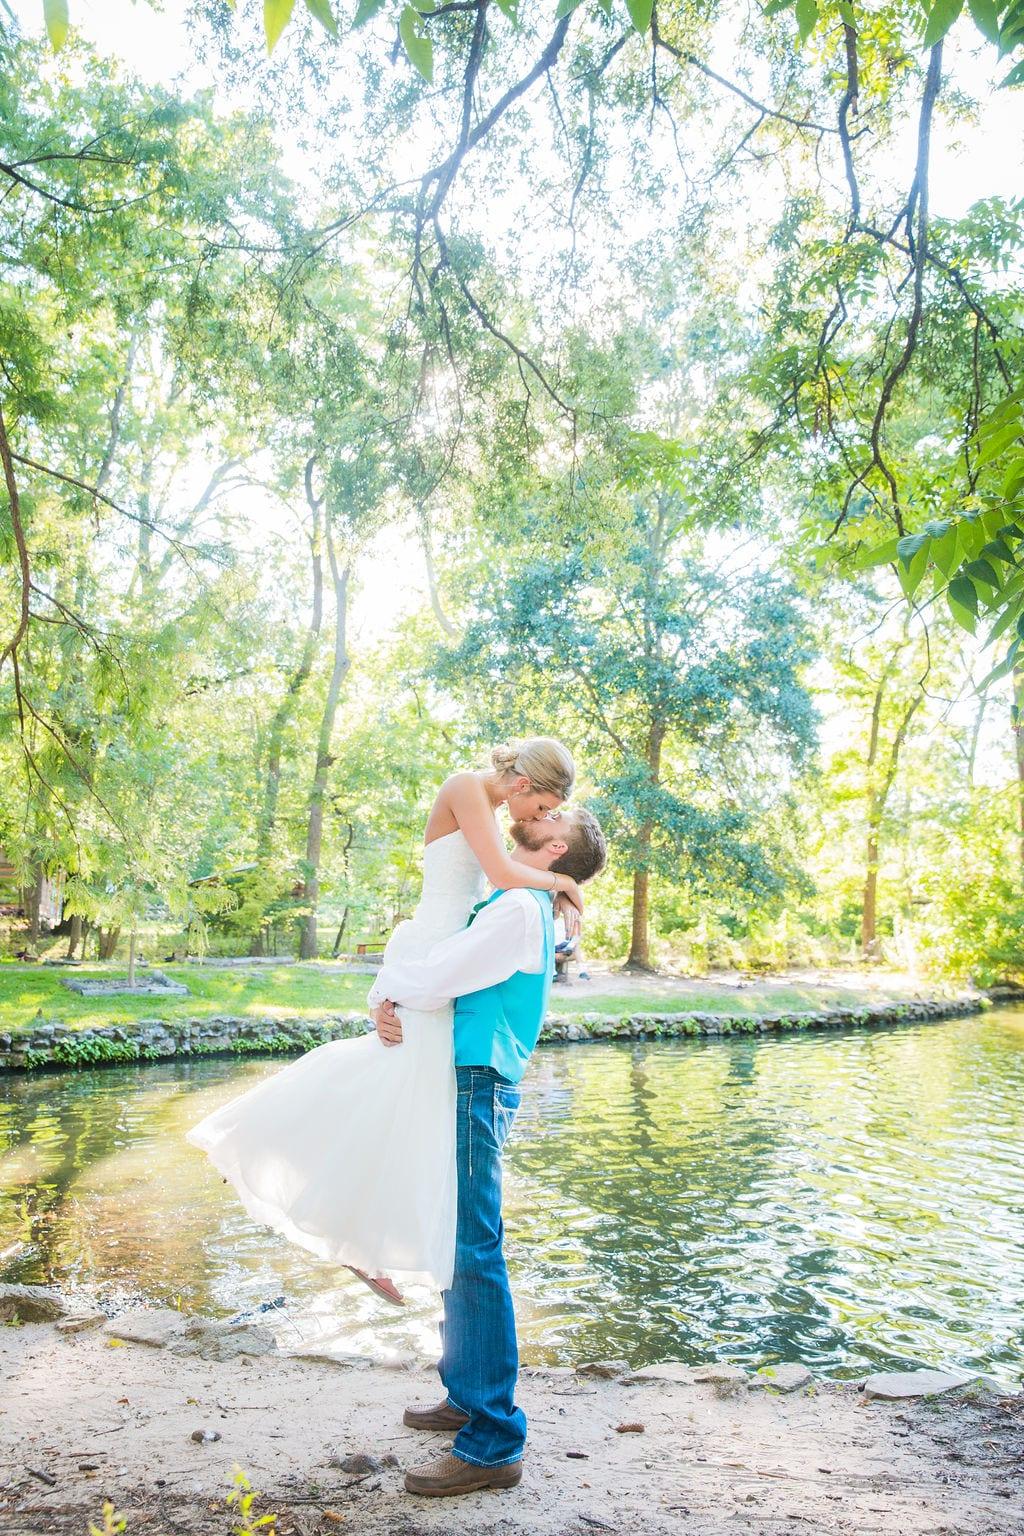 Courtney and Bearen's Wedding couple by pond him holding her up